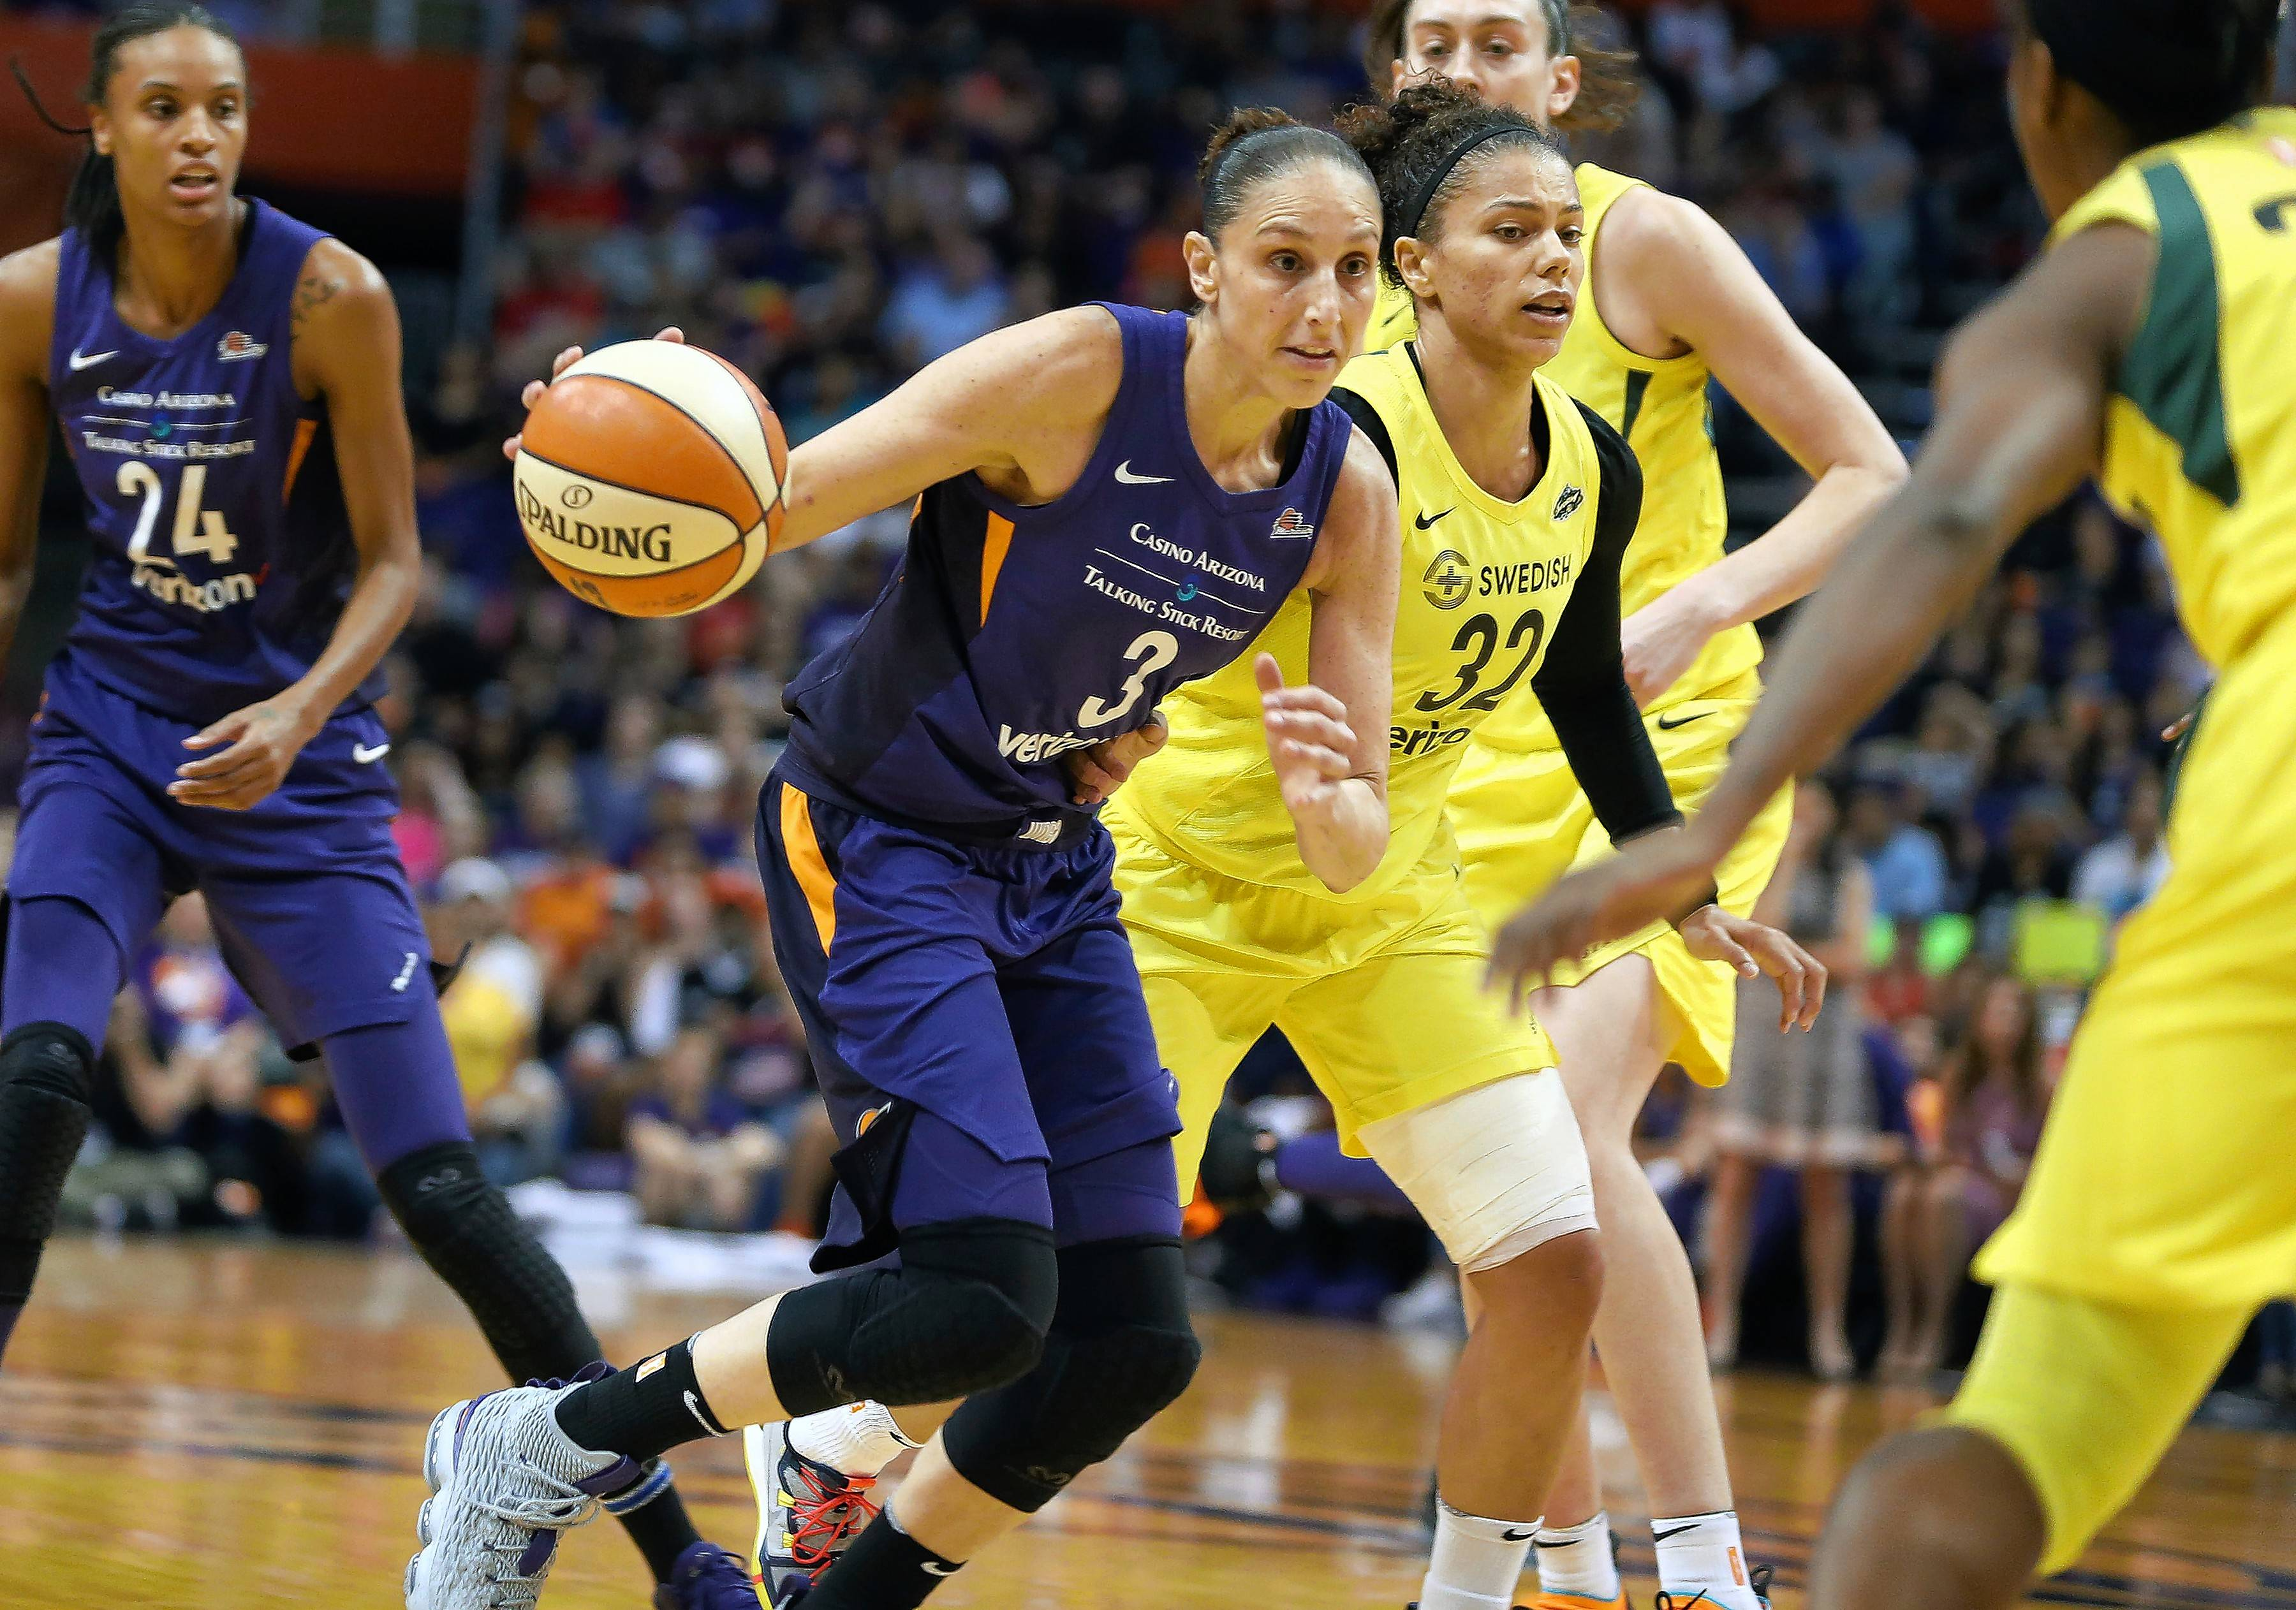 Phoenix Mercury forward Diana Taurasi (3) drives to the basket against the Seattle Storm during the first half of Game 4 of a WNBA basketball playoff semifinal, Sunday, Sept. 2, 2018, in Phoenix.